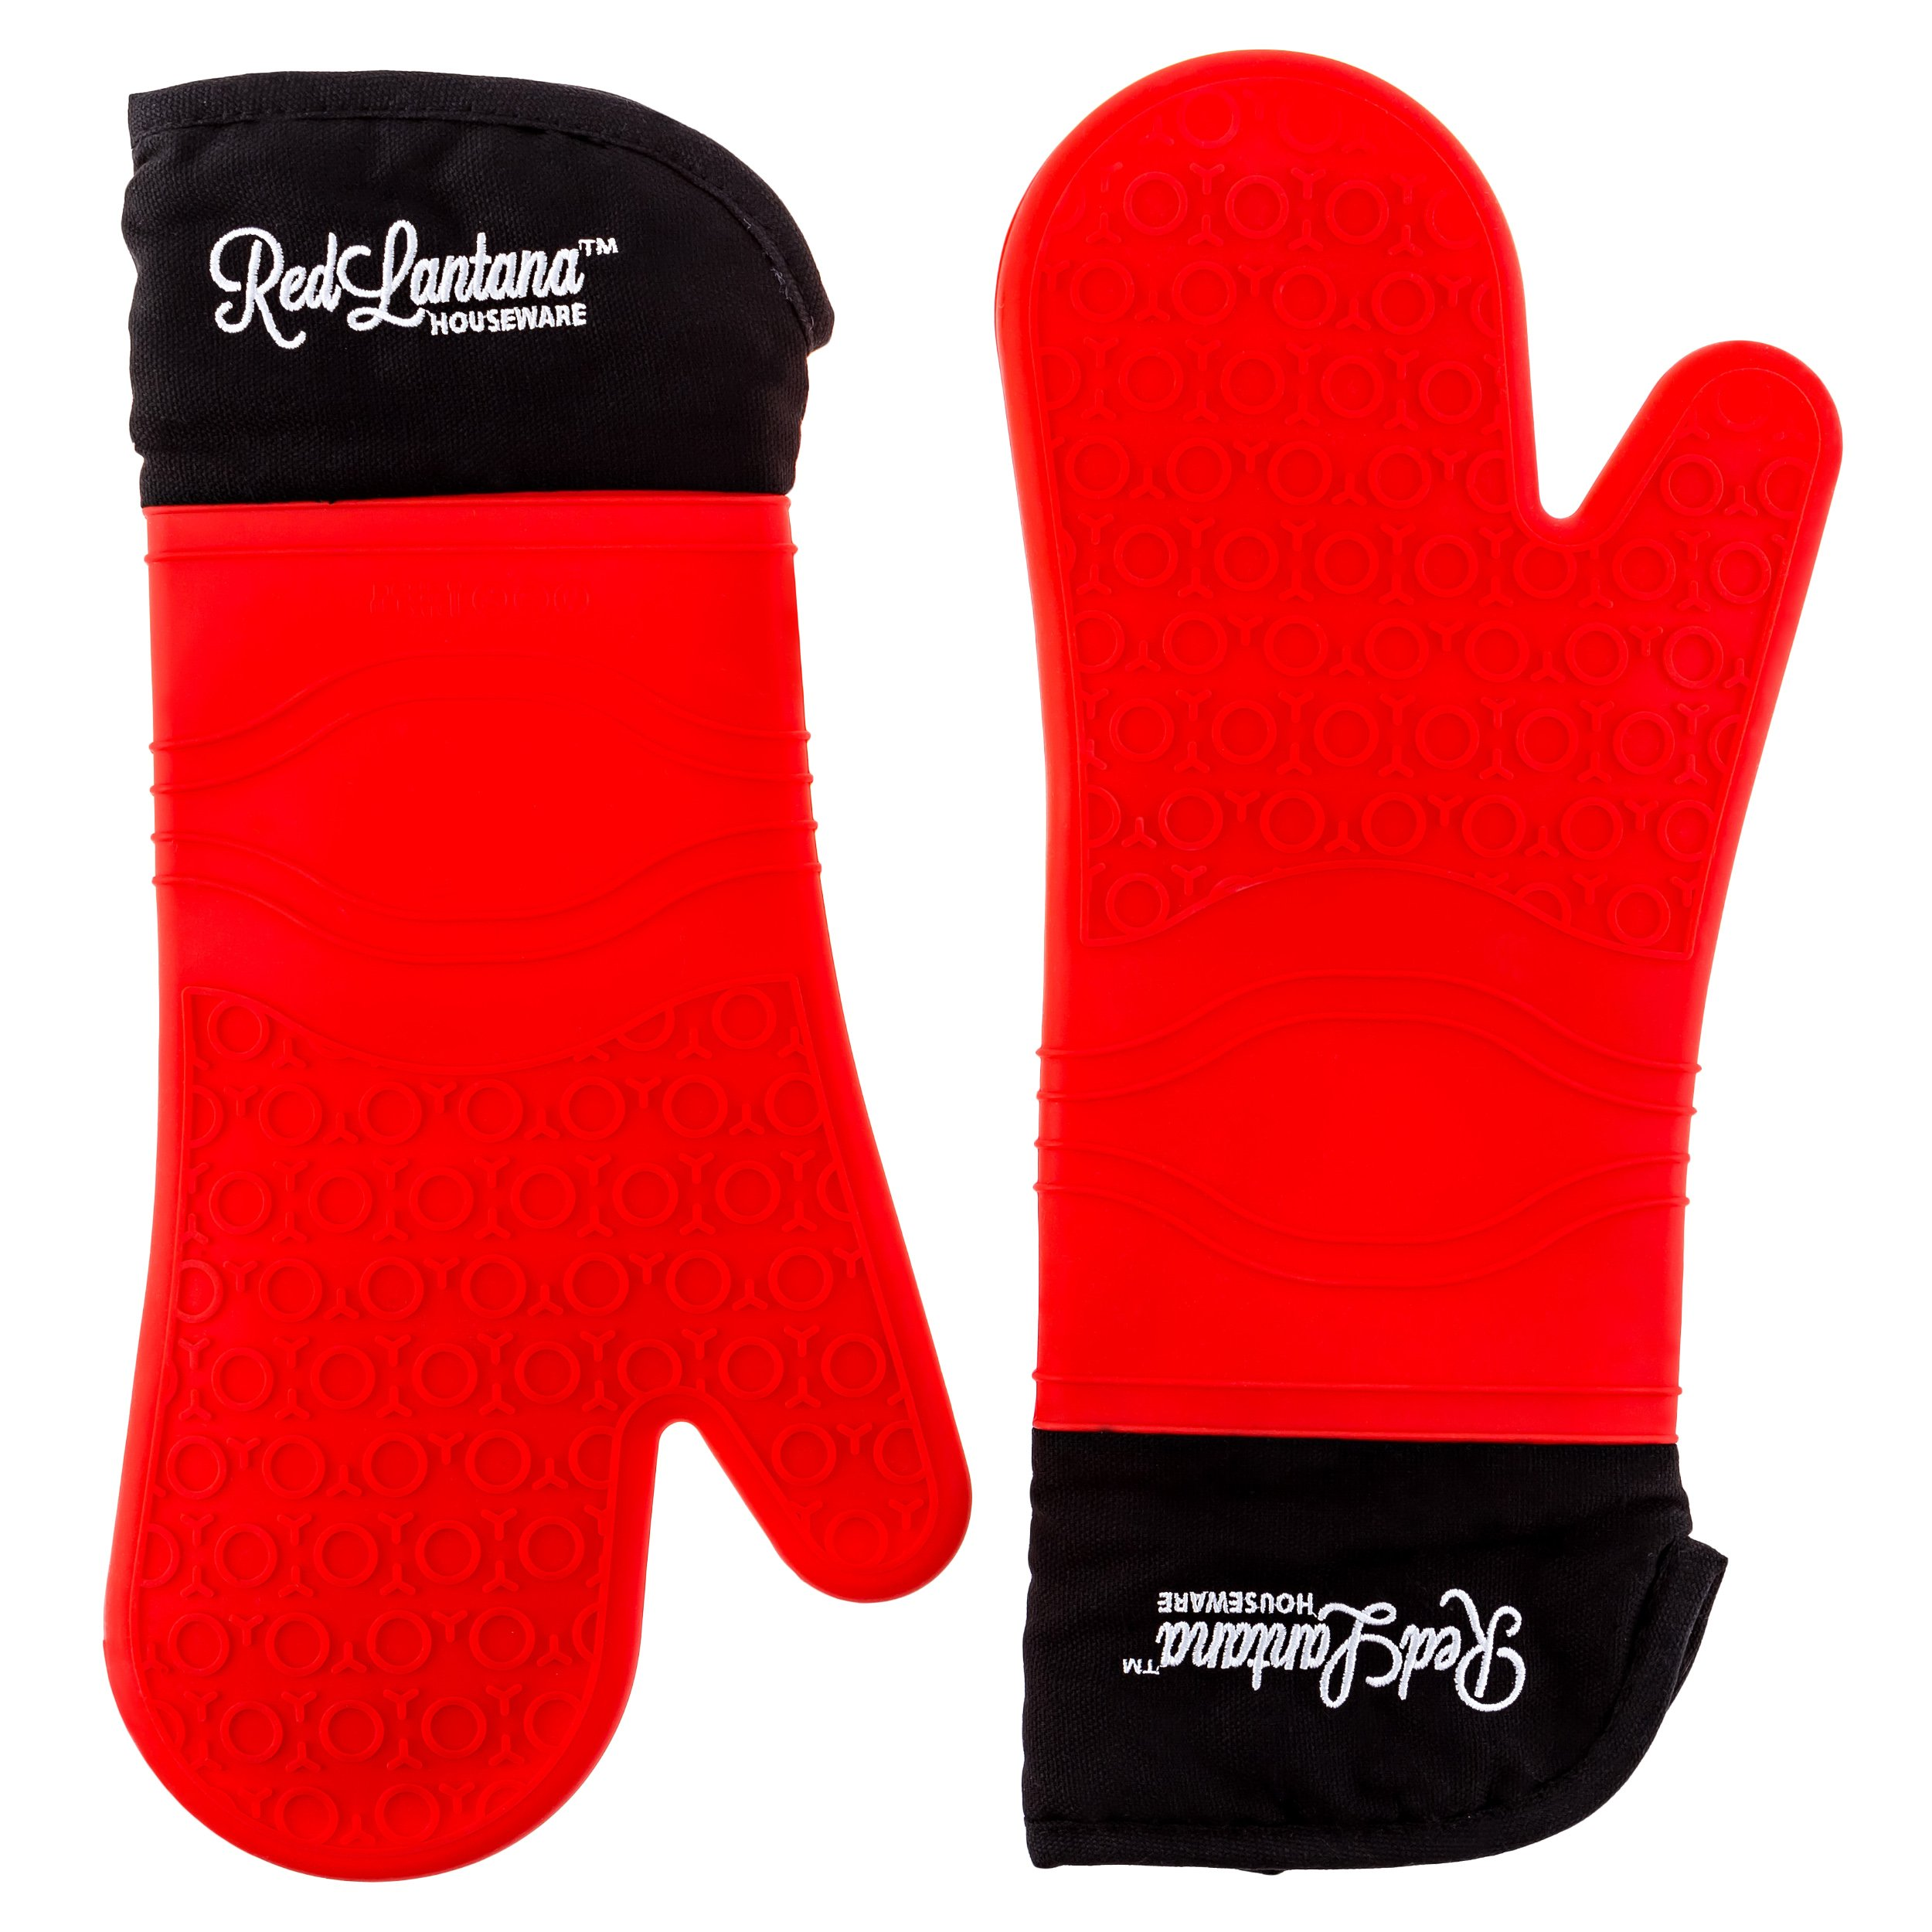 Silicone Oven Mitt - Set of 2 - Strong Non-slip Grip with Extra Long Built-in Cotton Interior Lining for Extra Protection of Lower Arm - Double Left- Or Right-handed Use - Professional Elbow-length Mittens Best Used As Baking, Grilling, BBQ, Kitchen or Ov